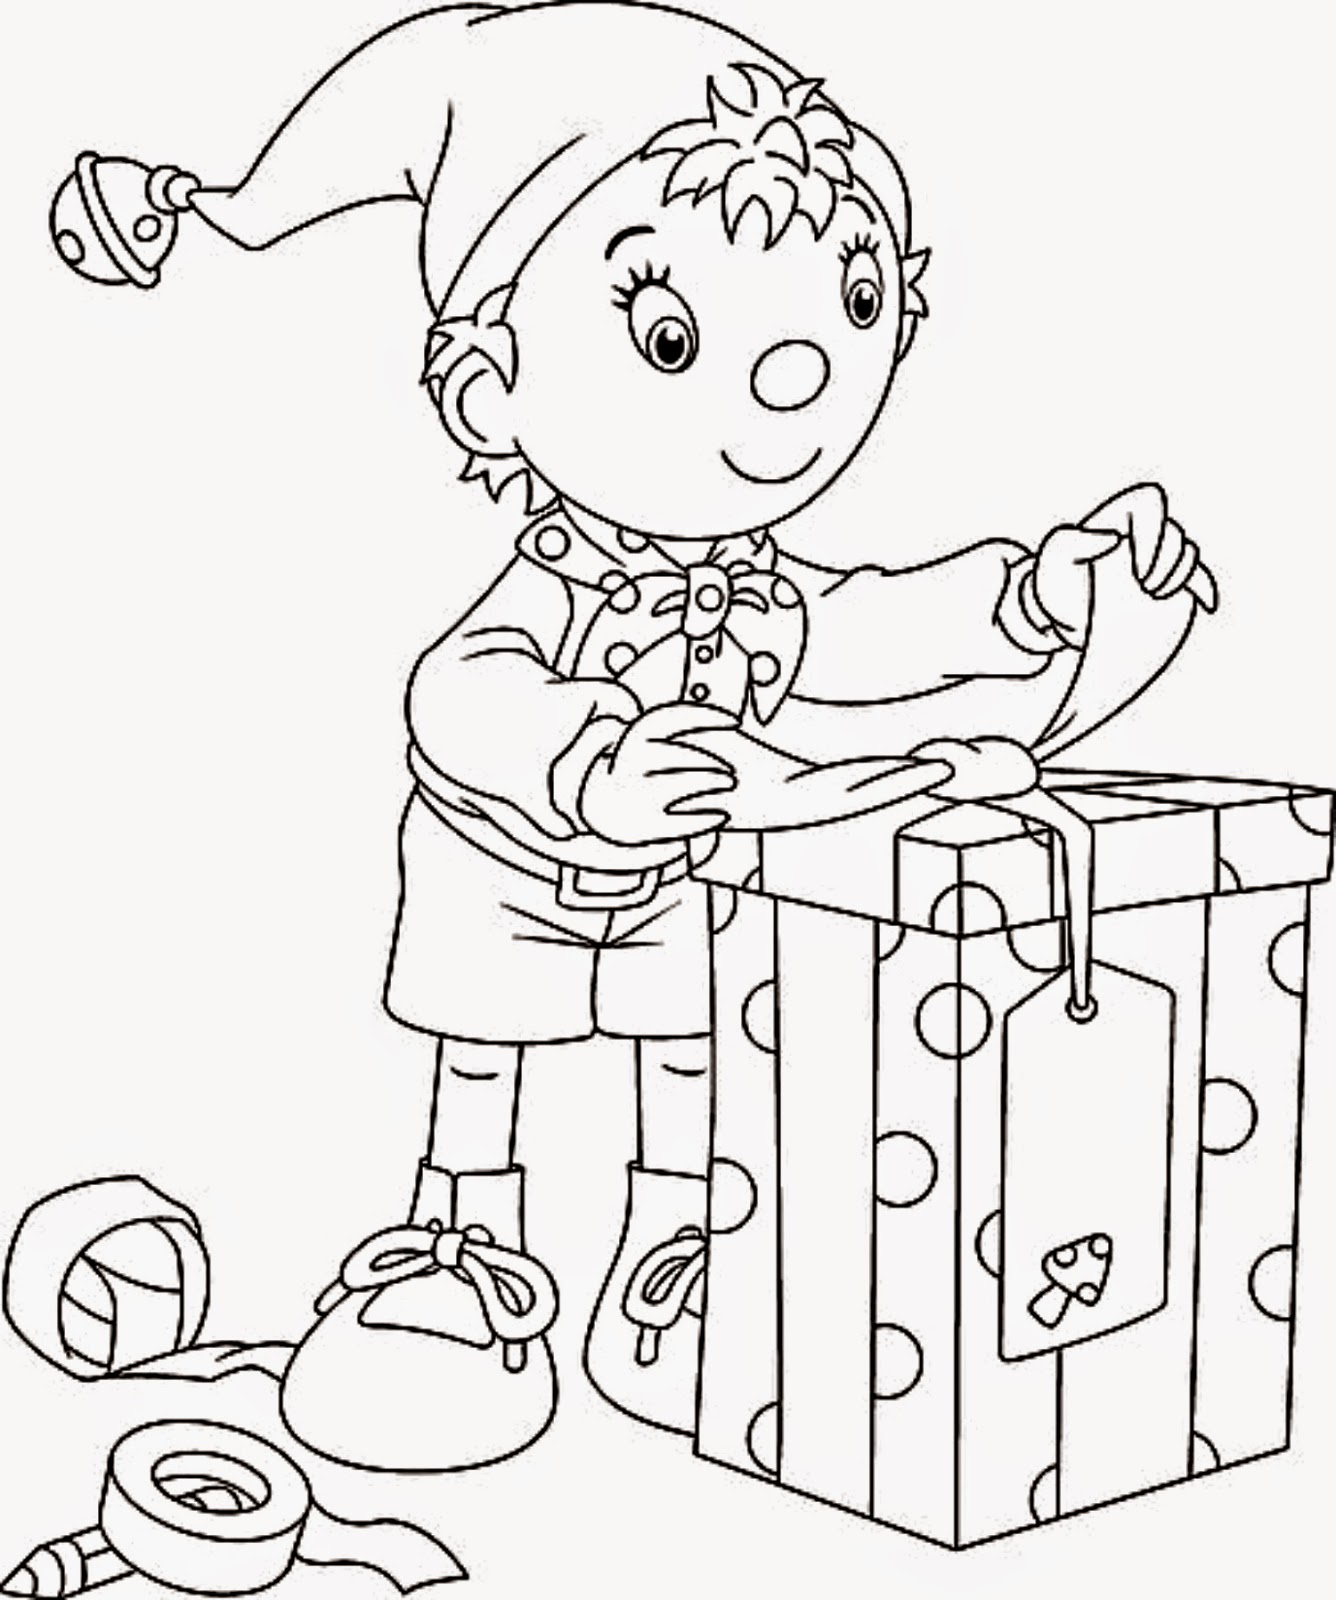 christmas present coloring page - coloring pages november 2014